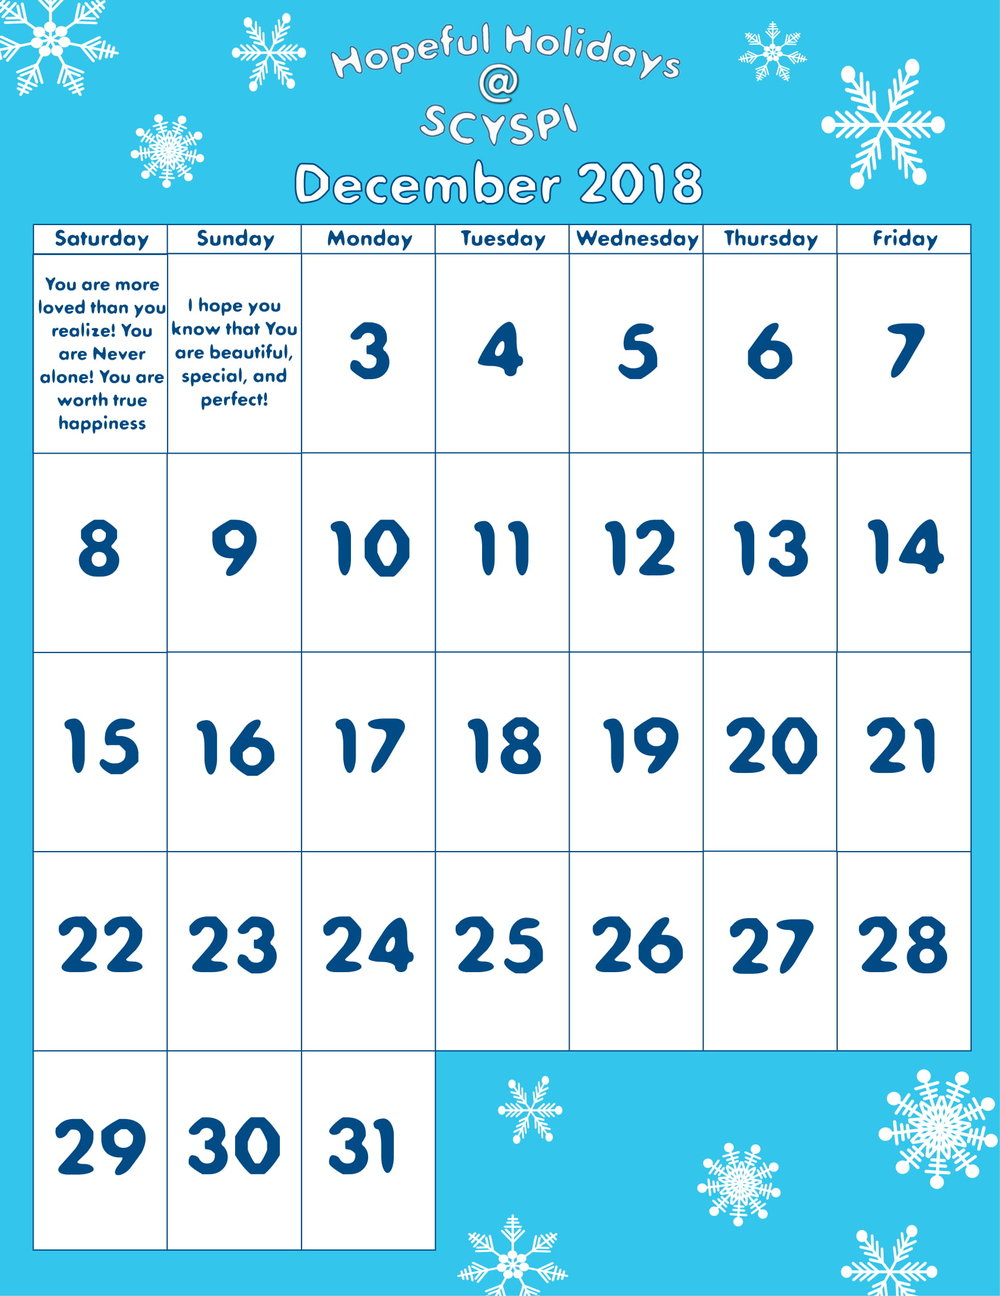 hopeful holidays calendar dec 2nd-1.jpg